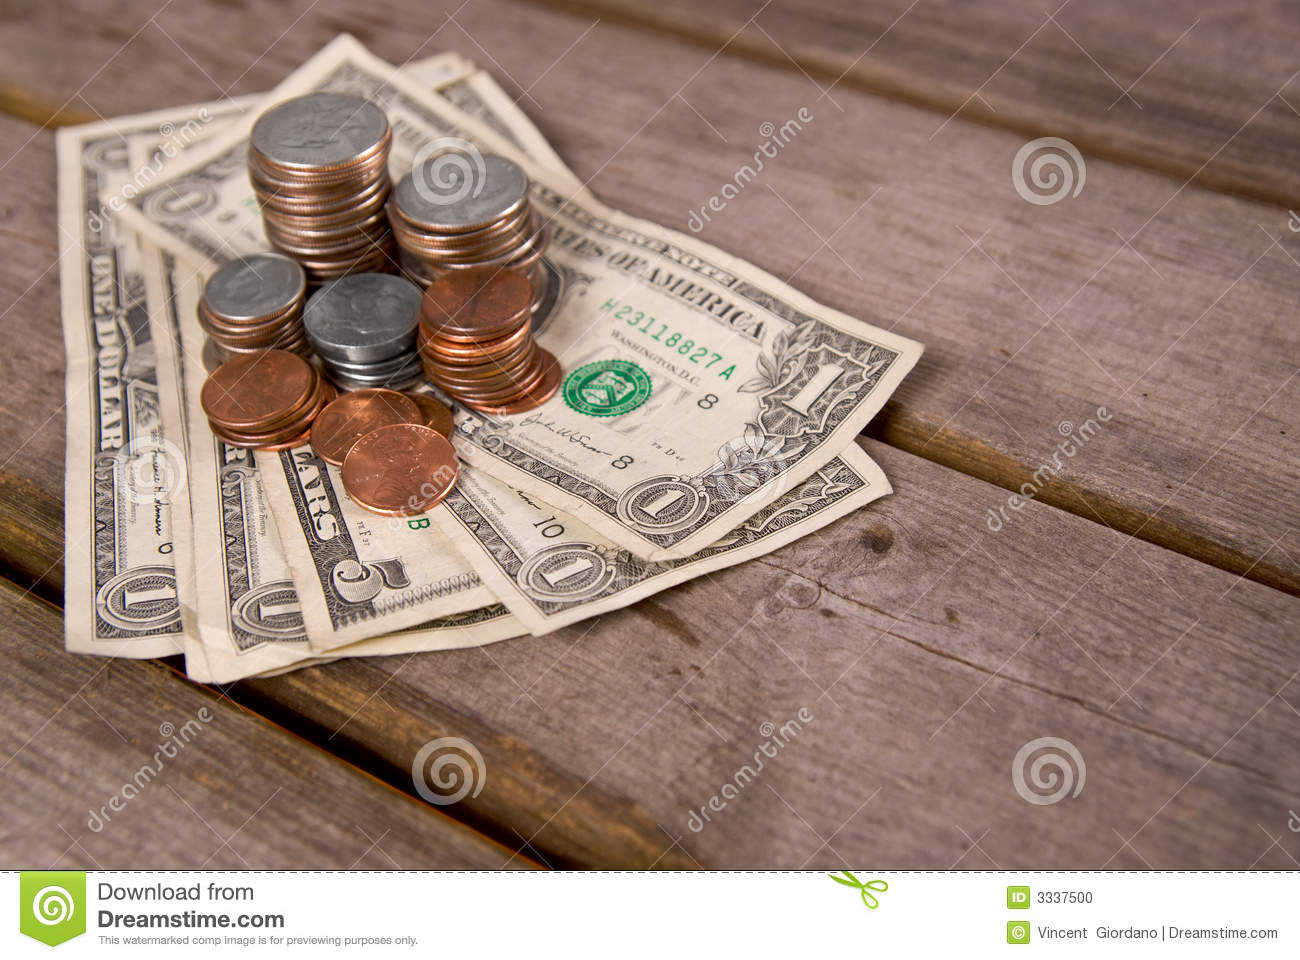 Coins & Money On Picnic Table Stock Photo - Image: 3337500